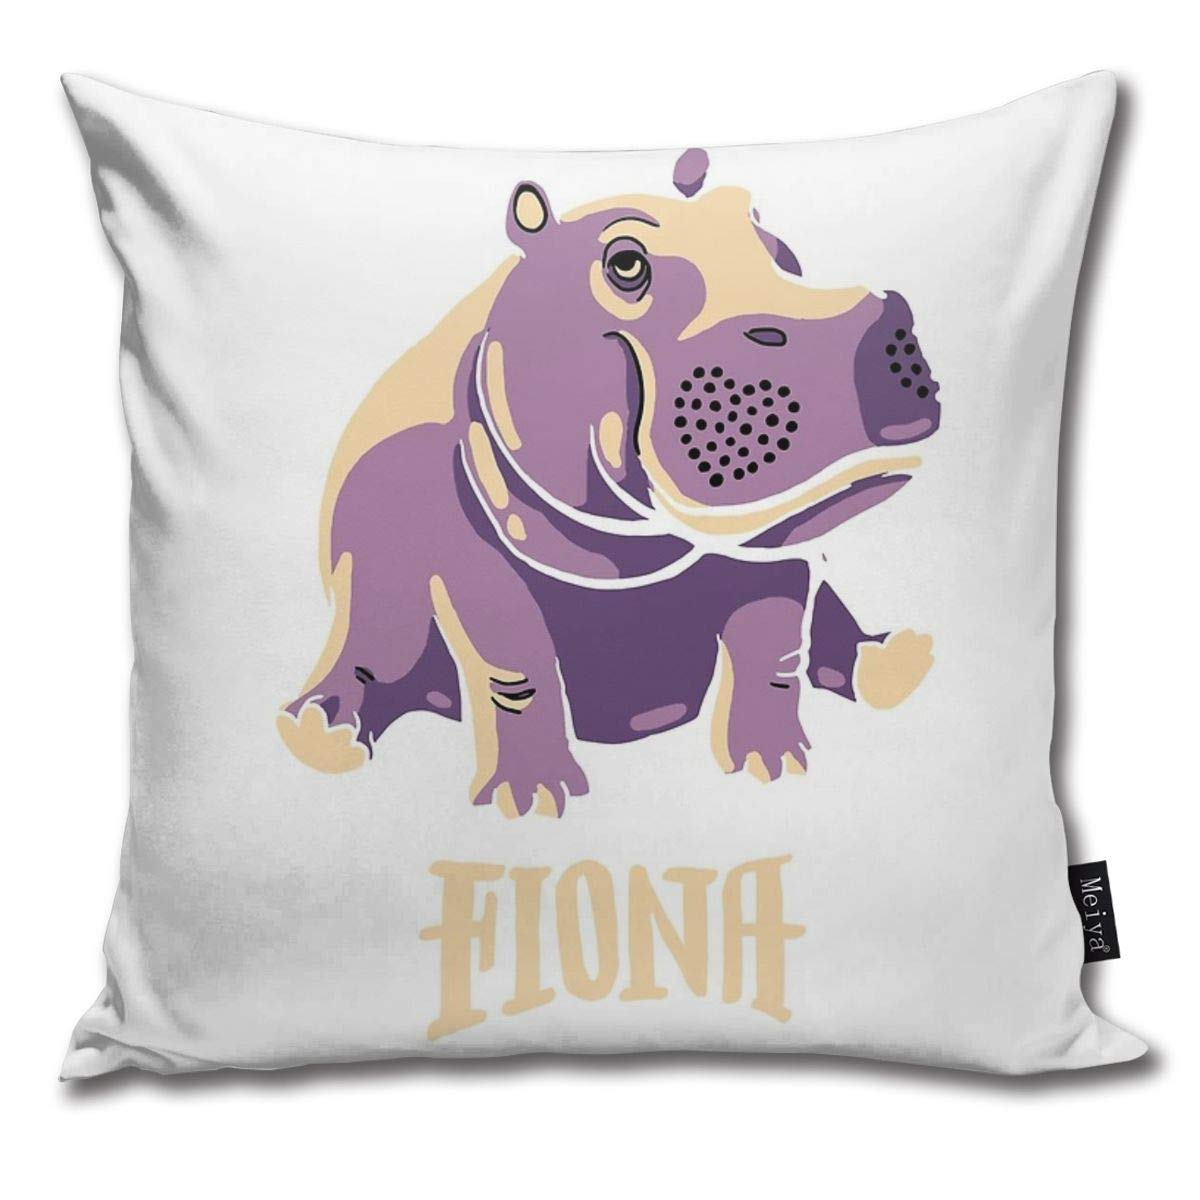 Cute Baby Hippo Pattern Square 18x18 Inches 45x45cm Throw Pillow Cover Case for Bedroom Couch Sofa Home Decor Vintage Fiona The Hippo Shirt #TeamFiona Merch